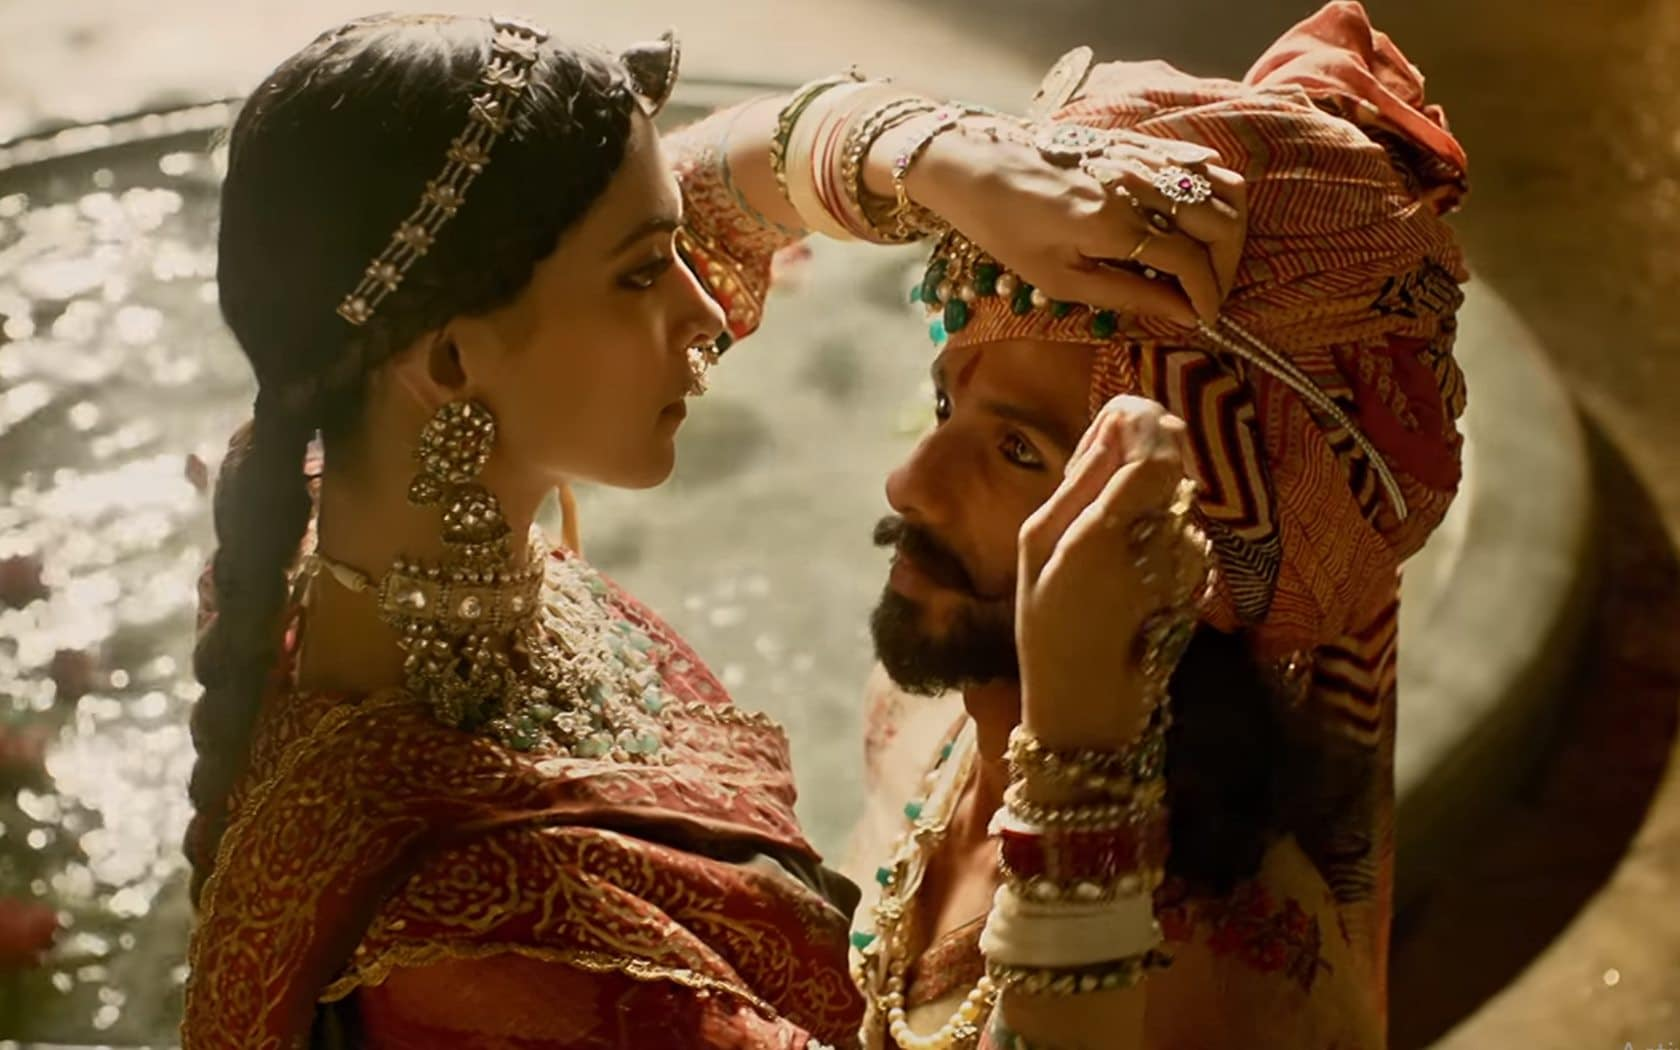 Shahid and Deepika have a great chemistry but the film falters in fleshing out their romance fully